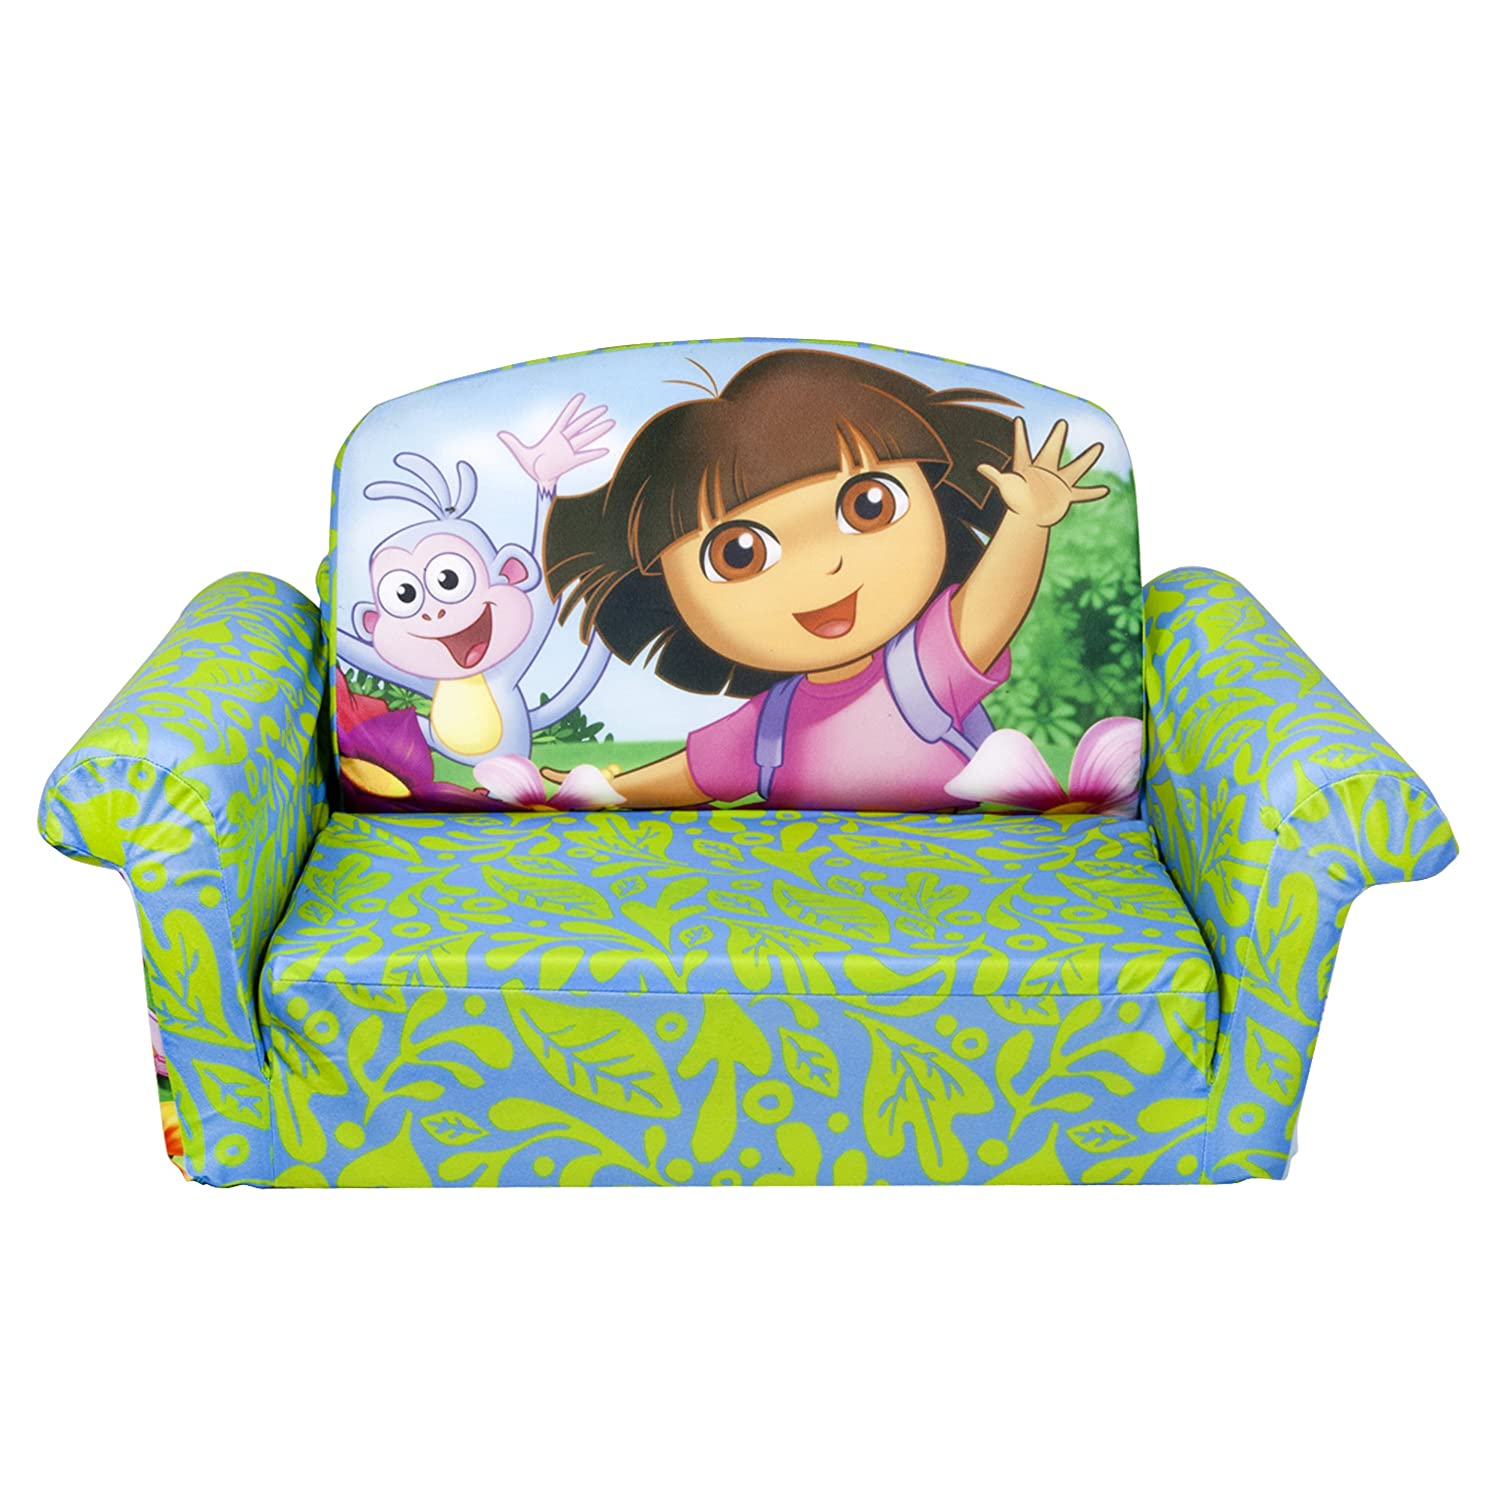 Marshmallow Furniture, 2 in 1 Flip Open Foam Sofa, Dora the Explorer, by Spin Master